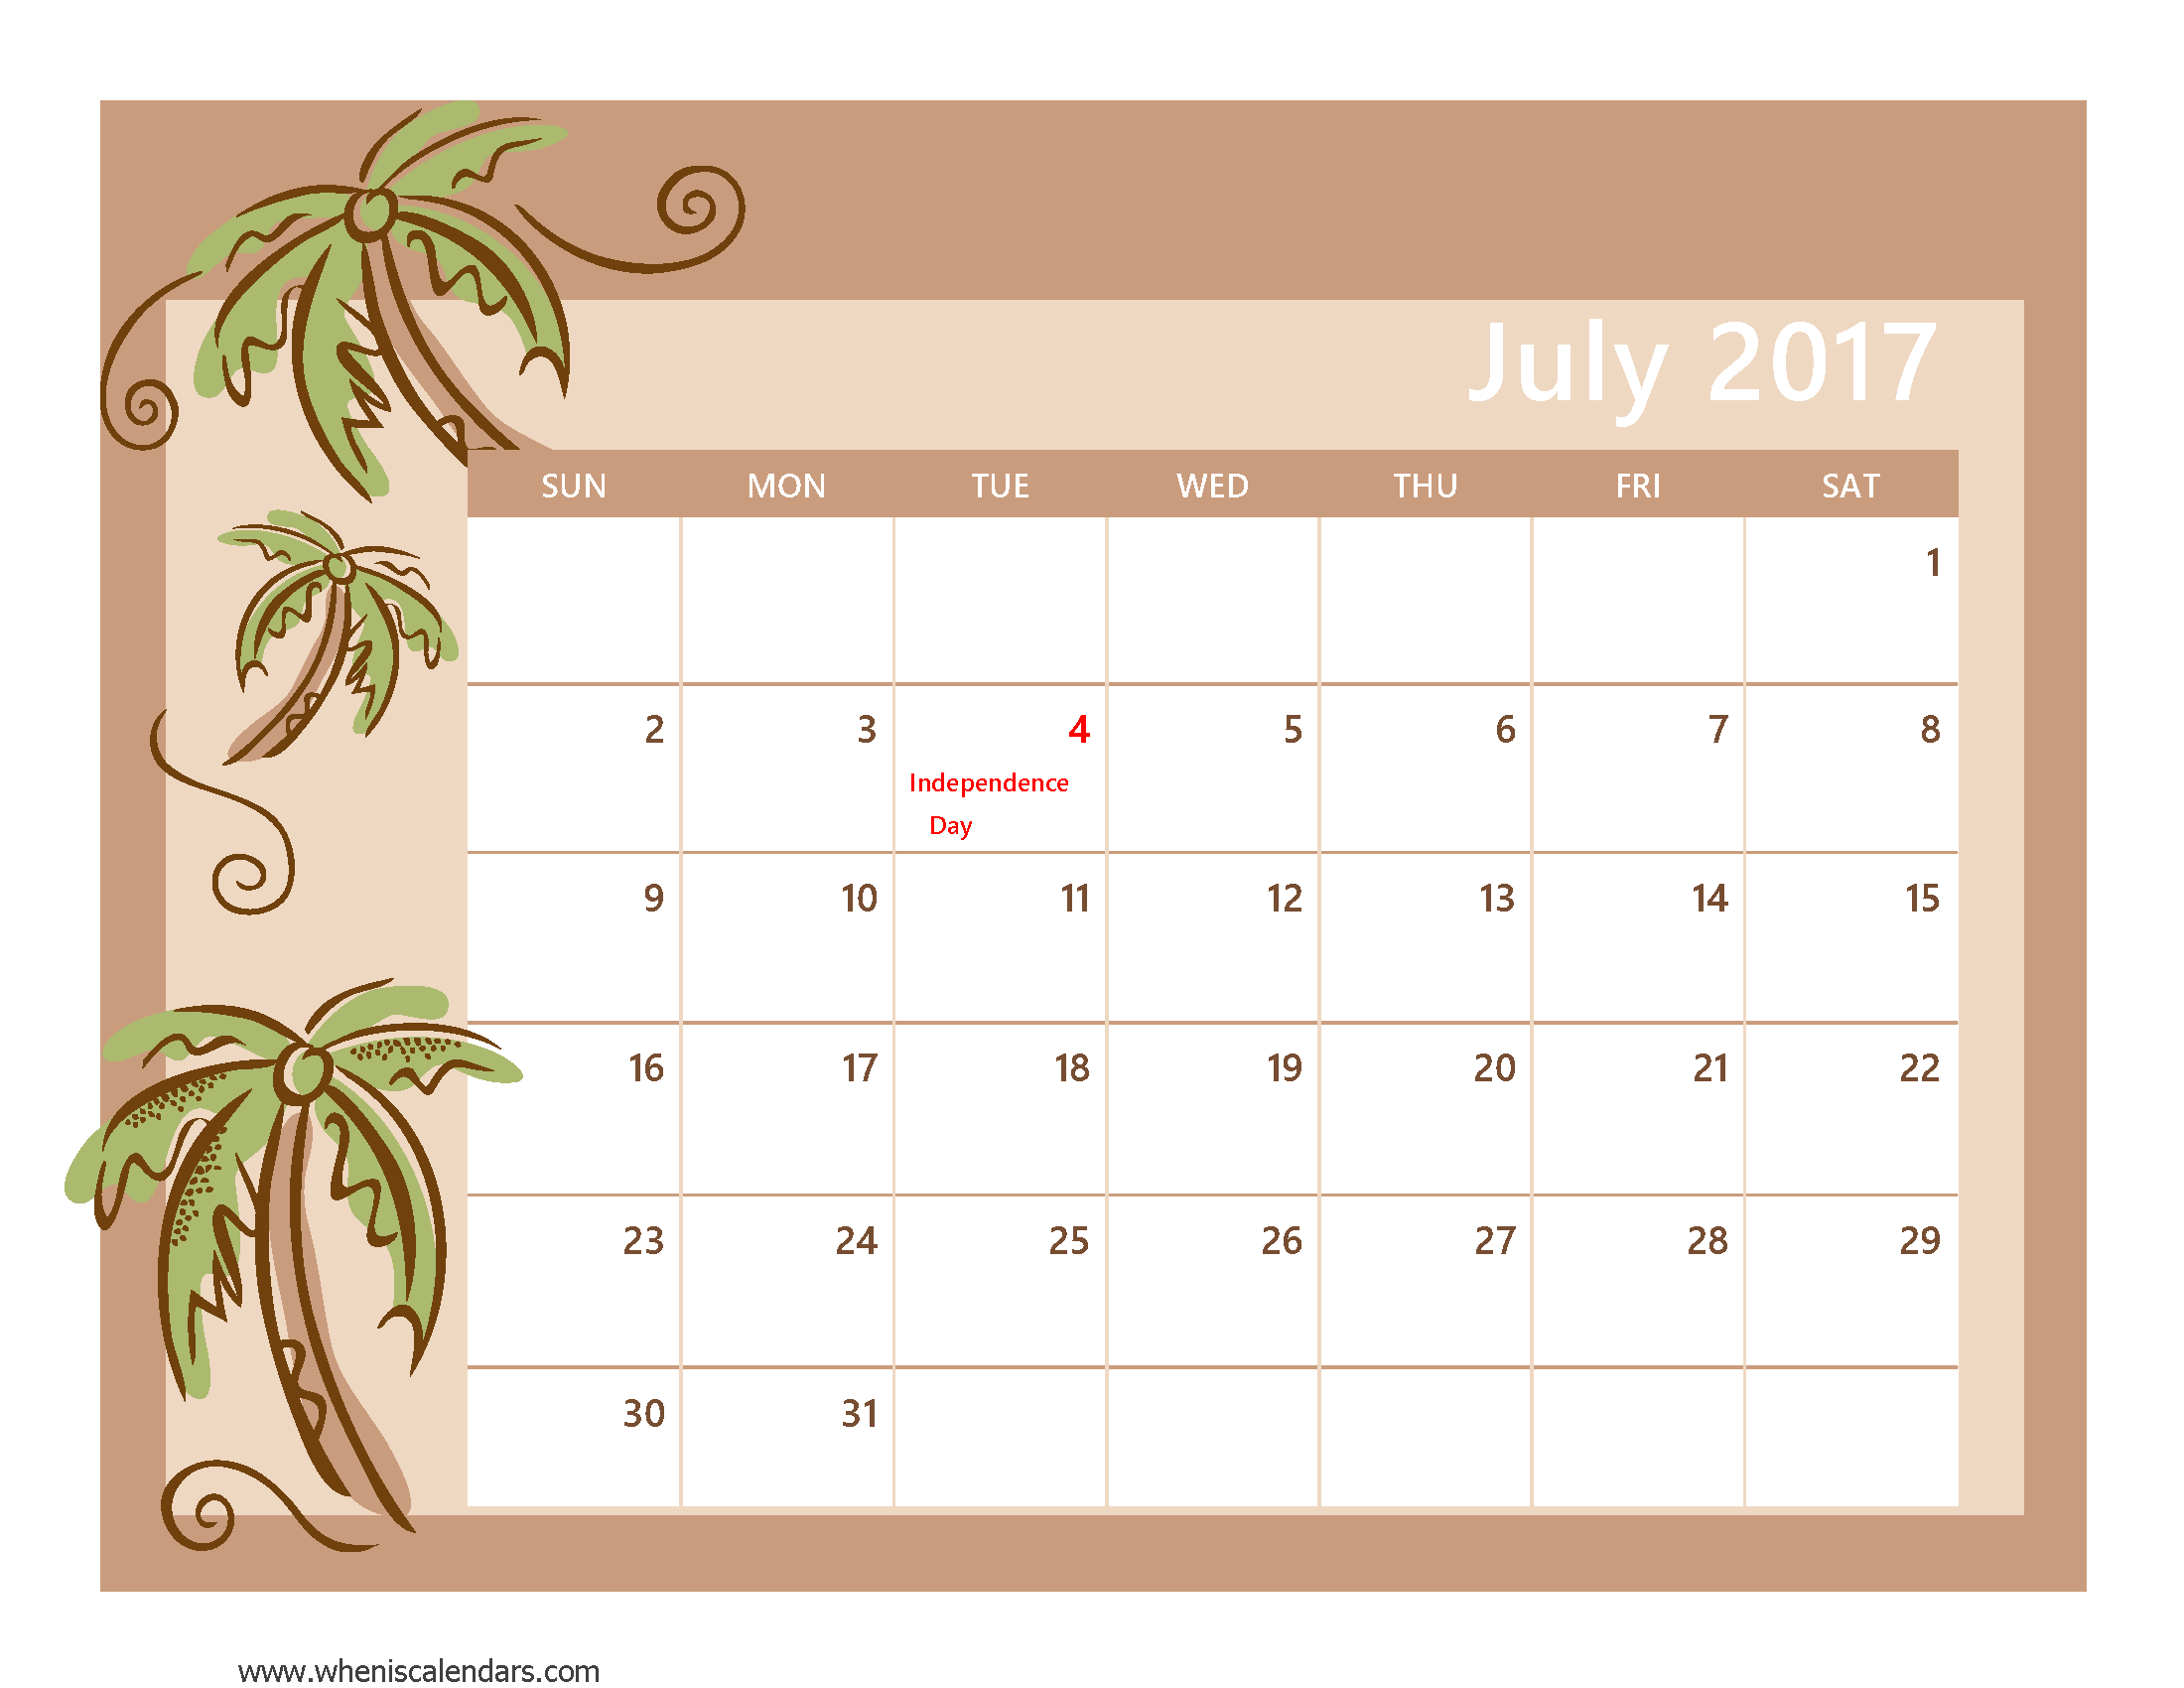 July 2017 Calendar With US Holidays